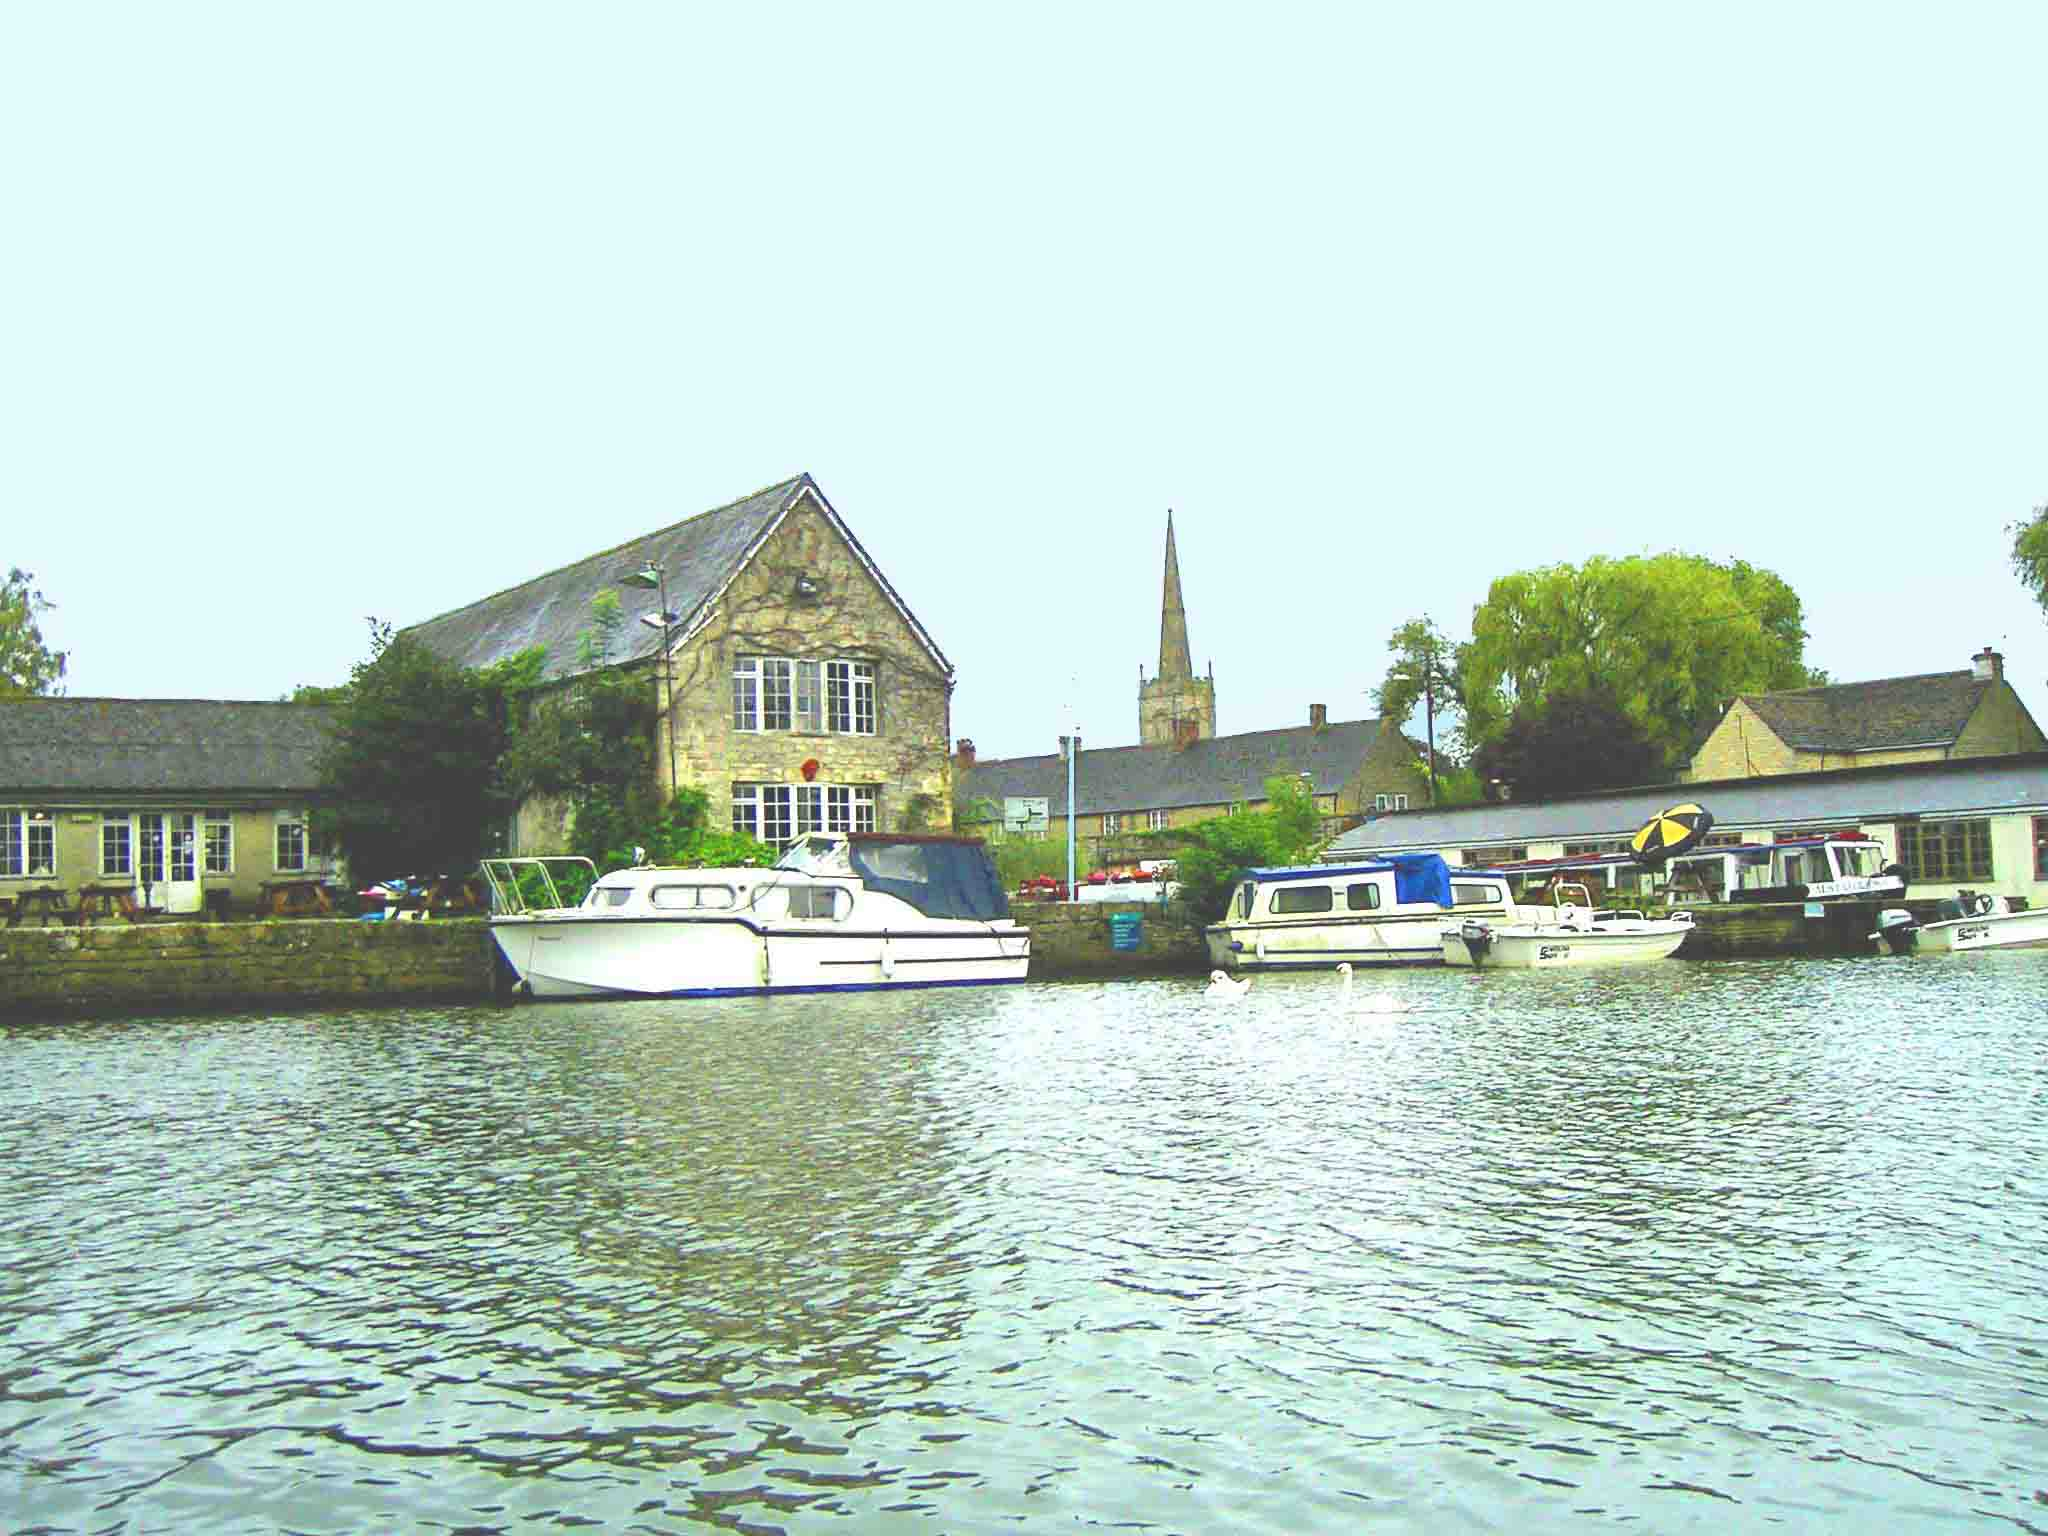 Riverside, Lechlade, 2000